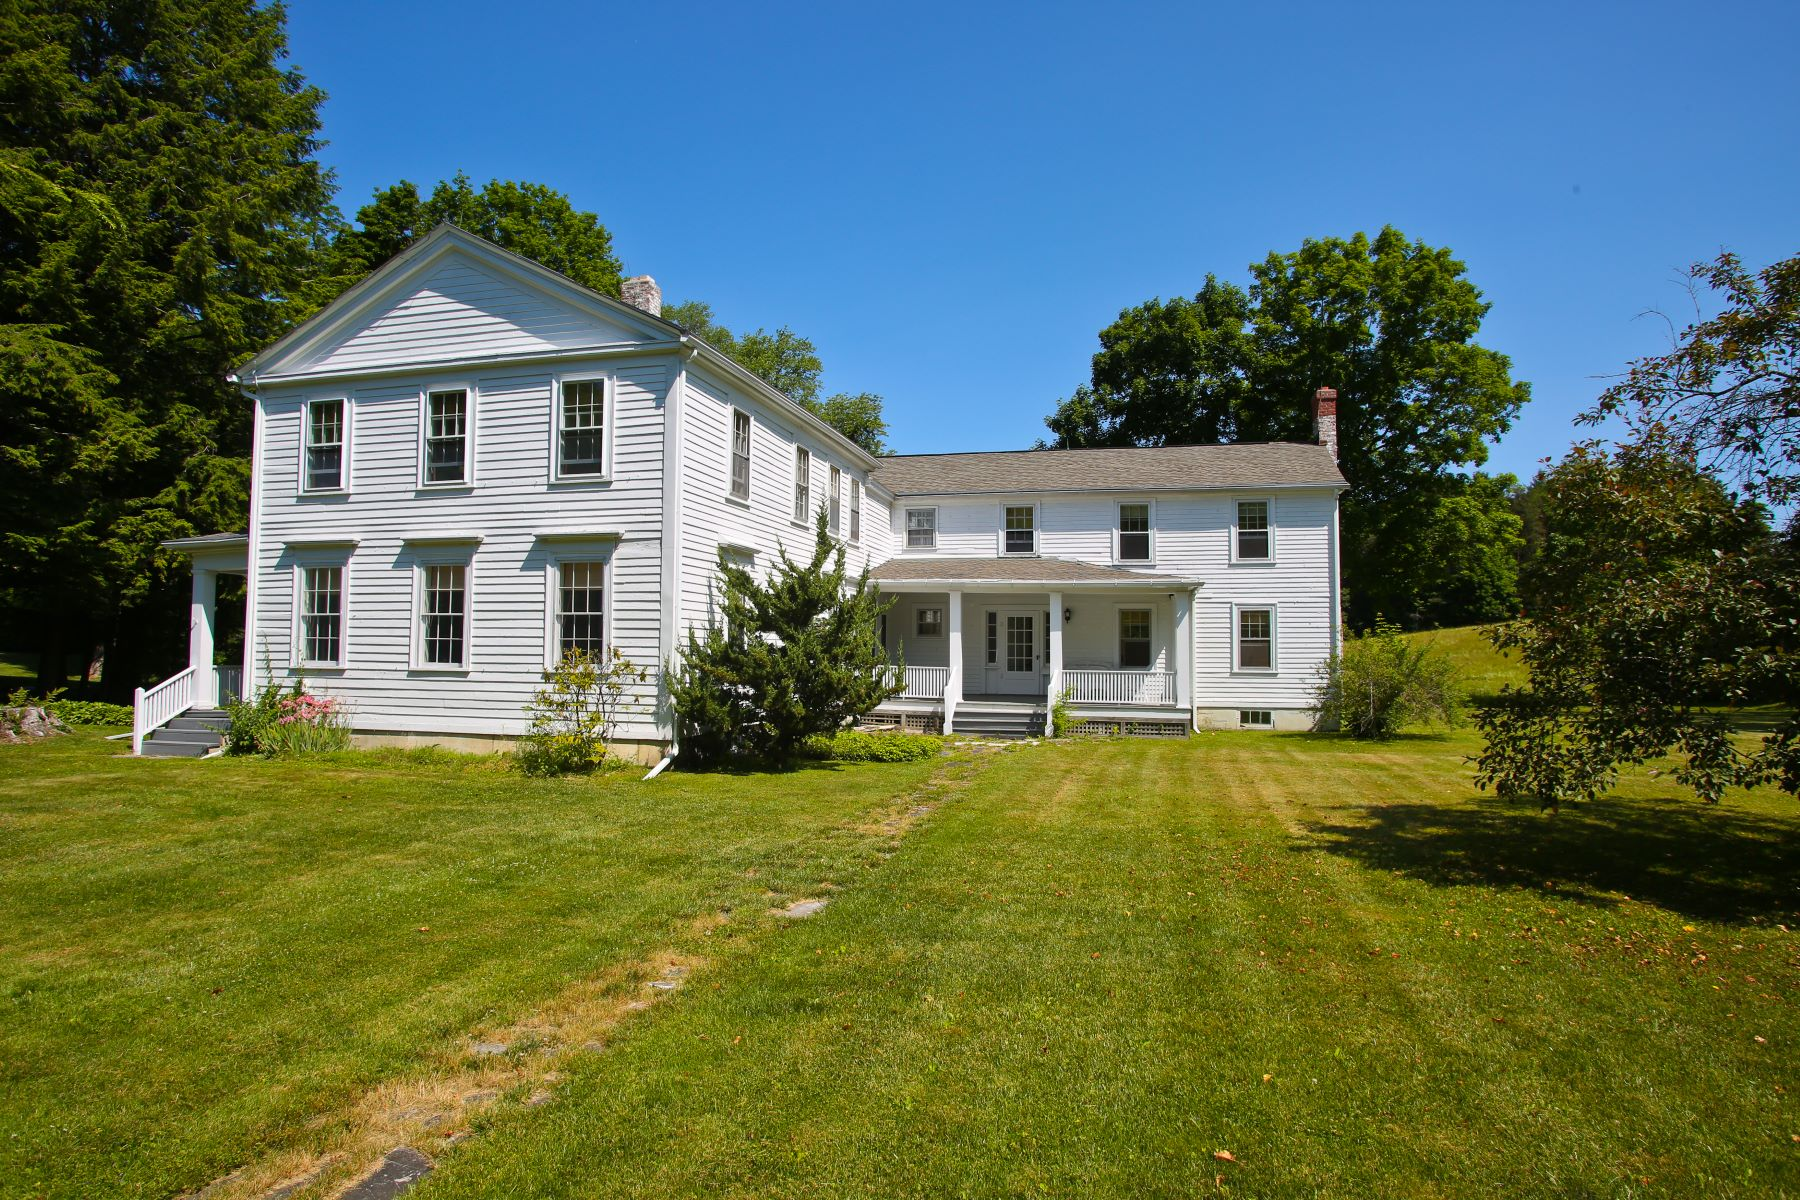 Single Family Home for Active at Wonderful Berkshire Farmhouse that Can Help Pay for Itself! 410 Swamp Rd Richmond, Massachusetts 01254 United States